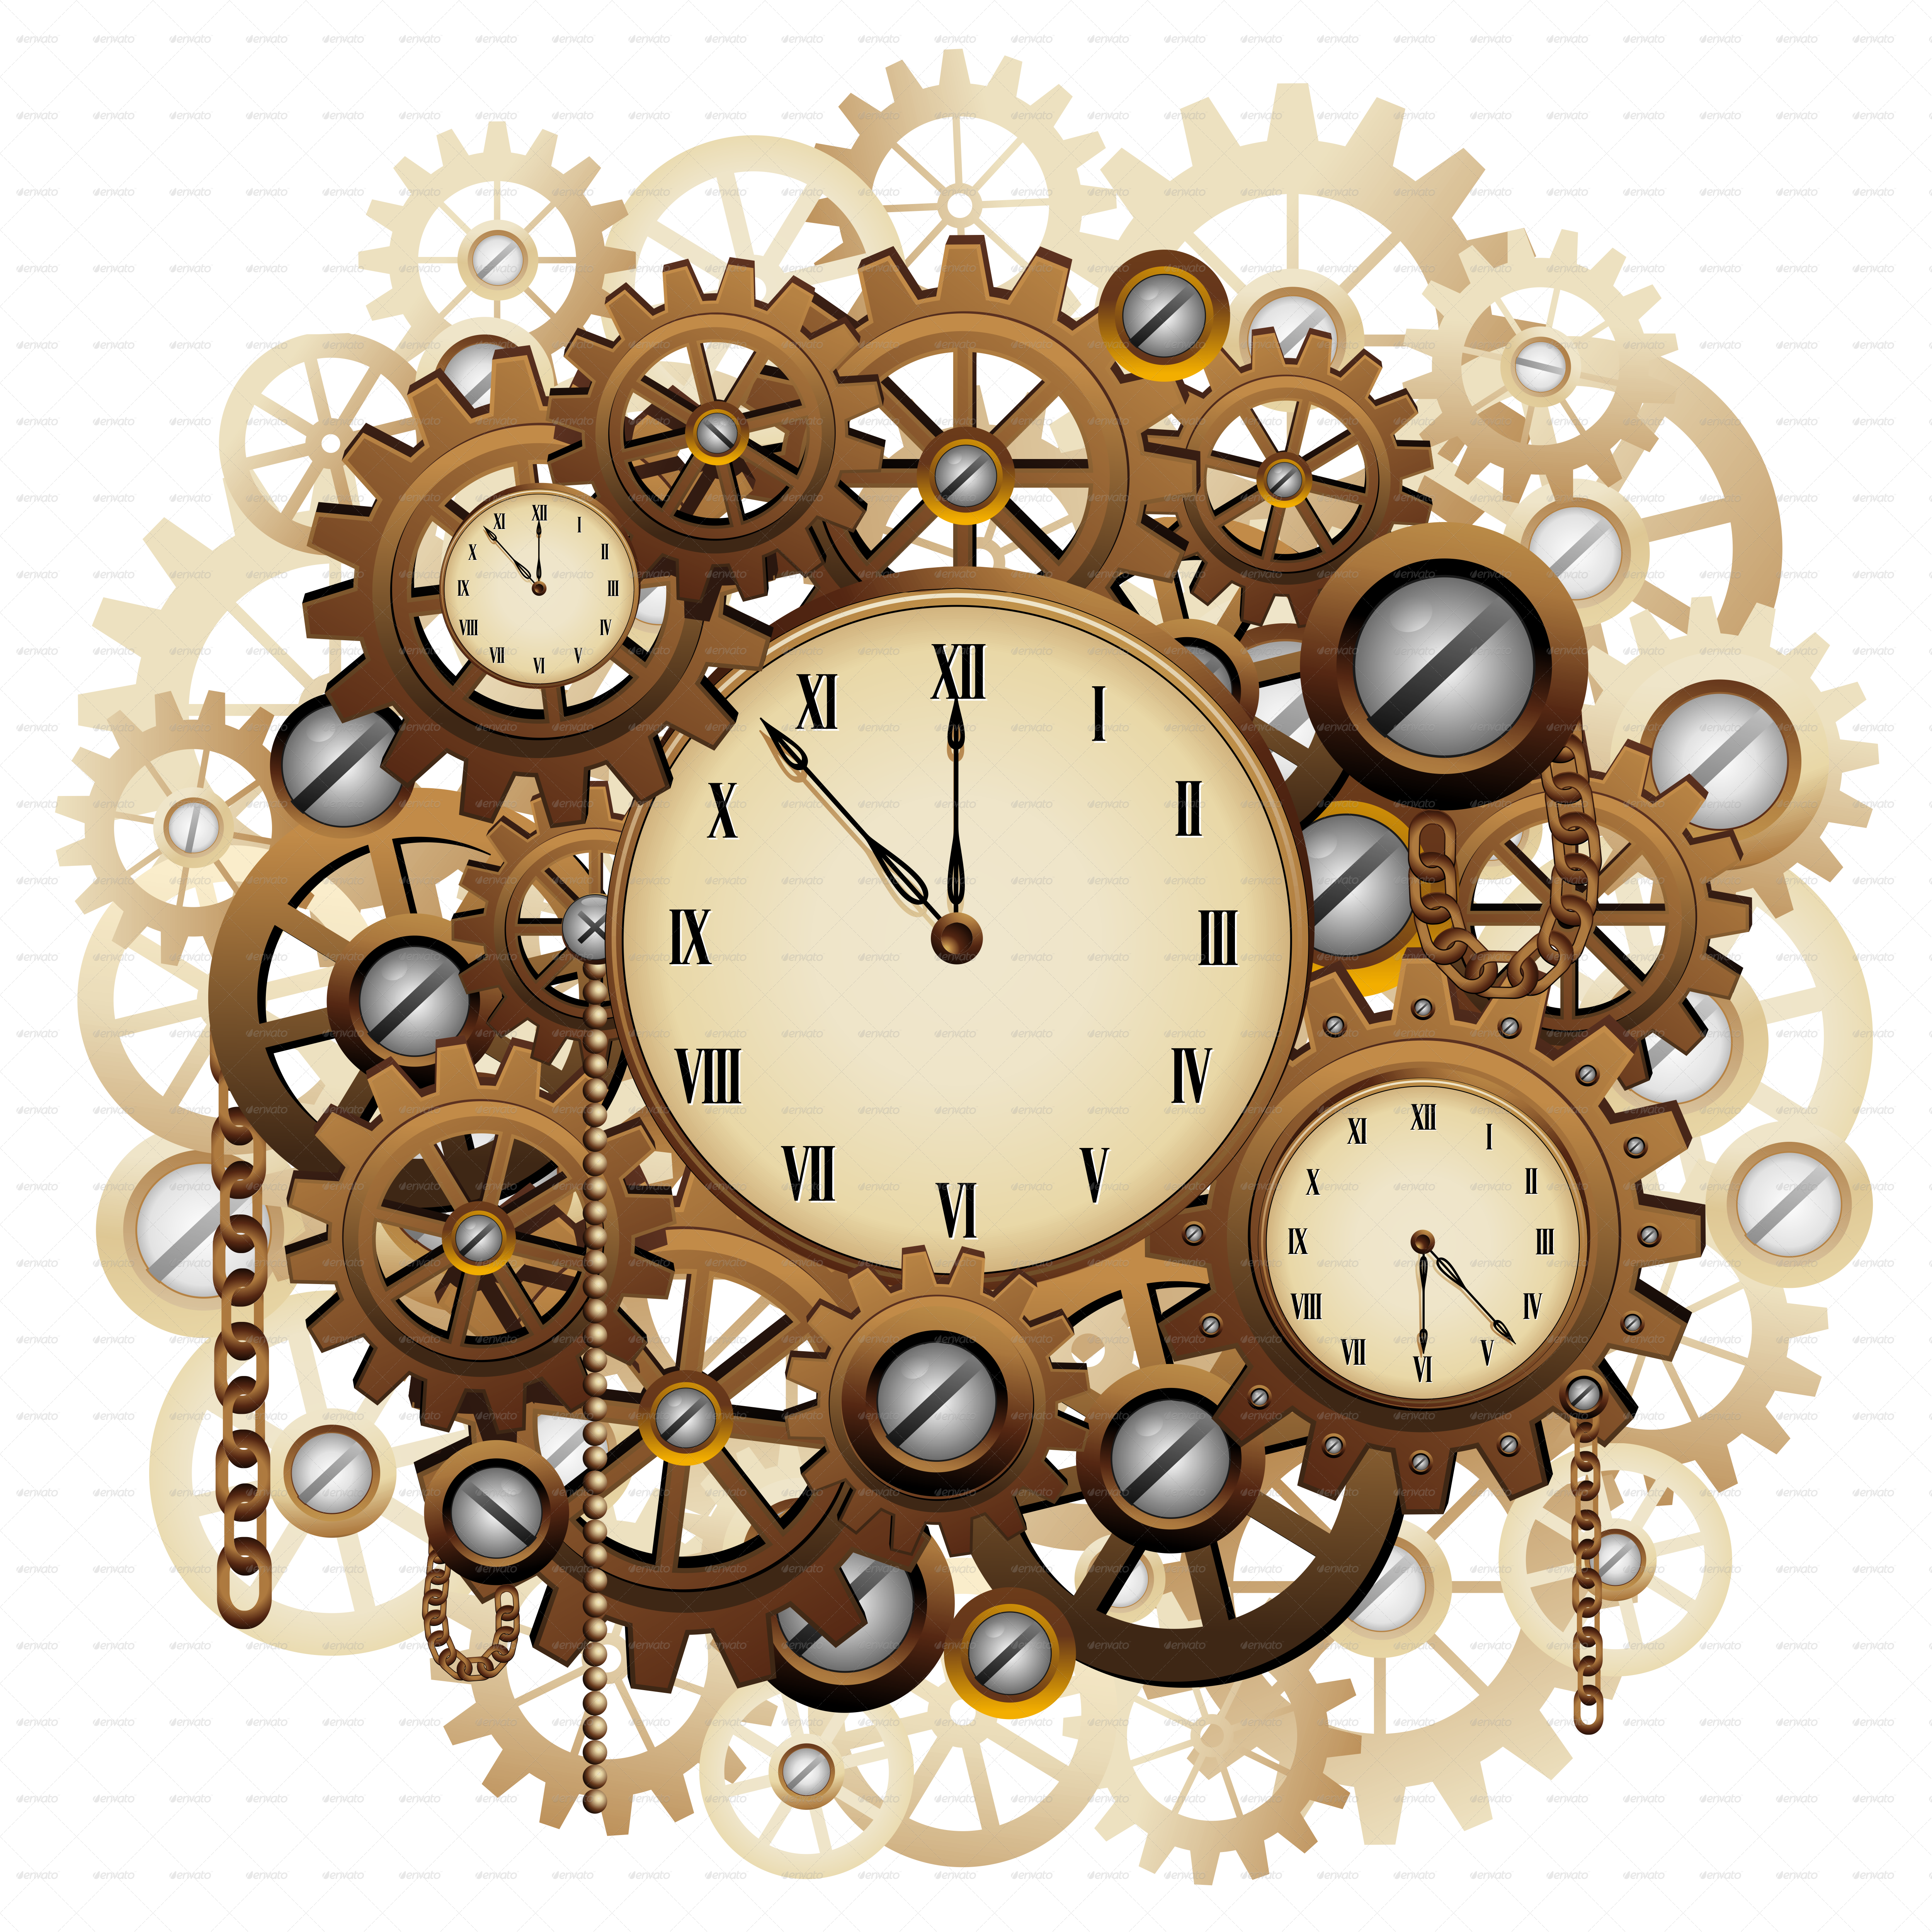 Steampunk clipart retro clock. Style clocks and gears